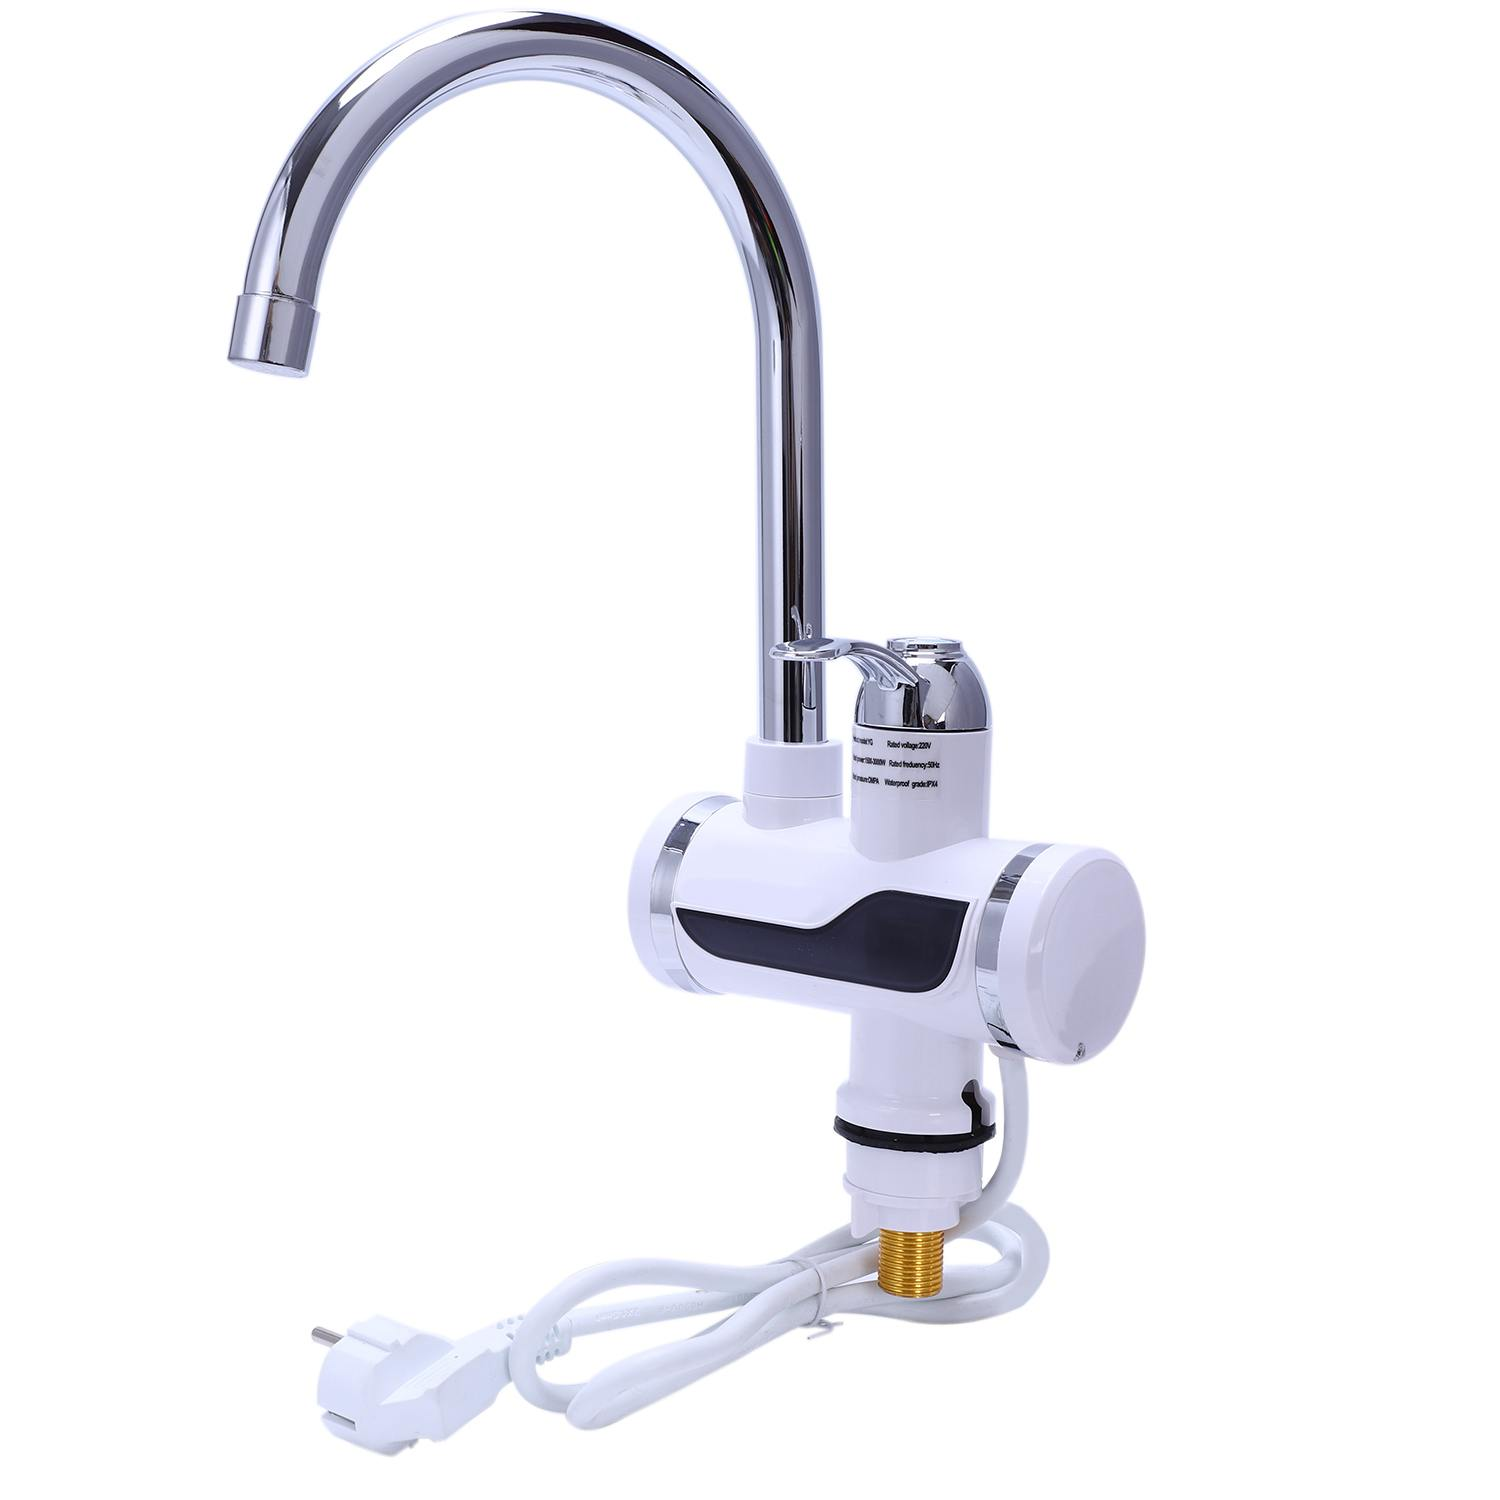 Hot Sale Eu Plug Electric Kitchen Water Heater Tap Instant Hot Water Faucet Heater Cold Heating Faucet Tankless Instantaneous-in Kitchen Faucets from Home Improvement